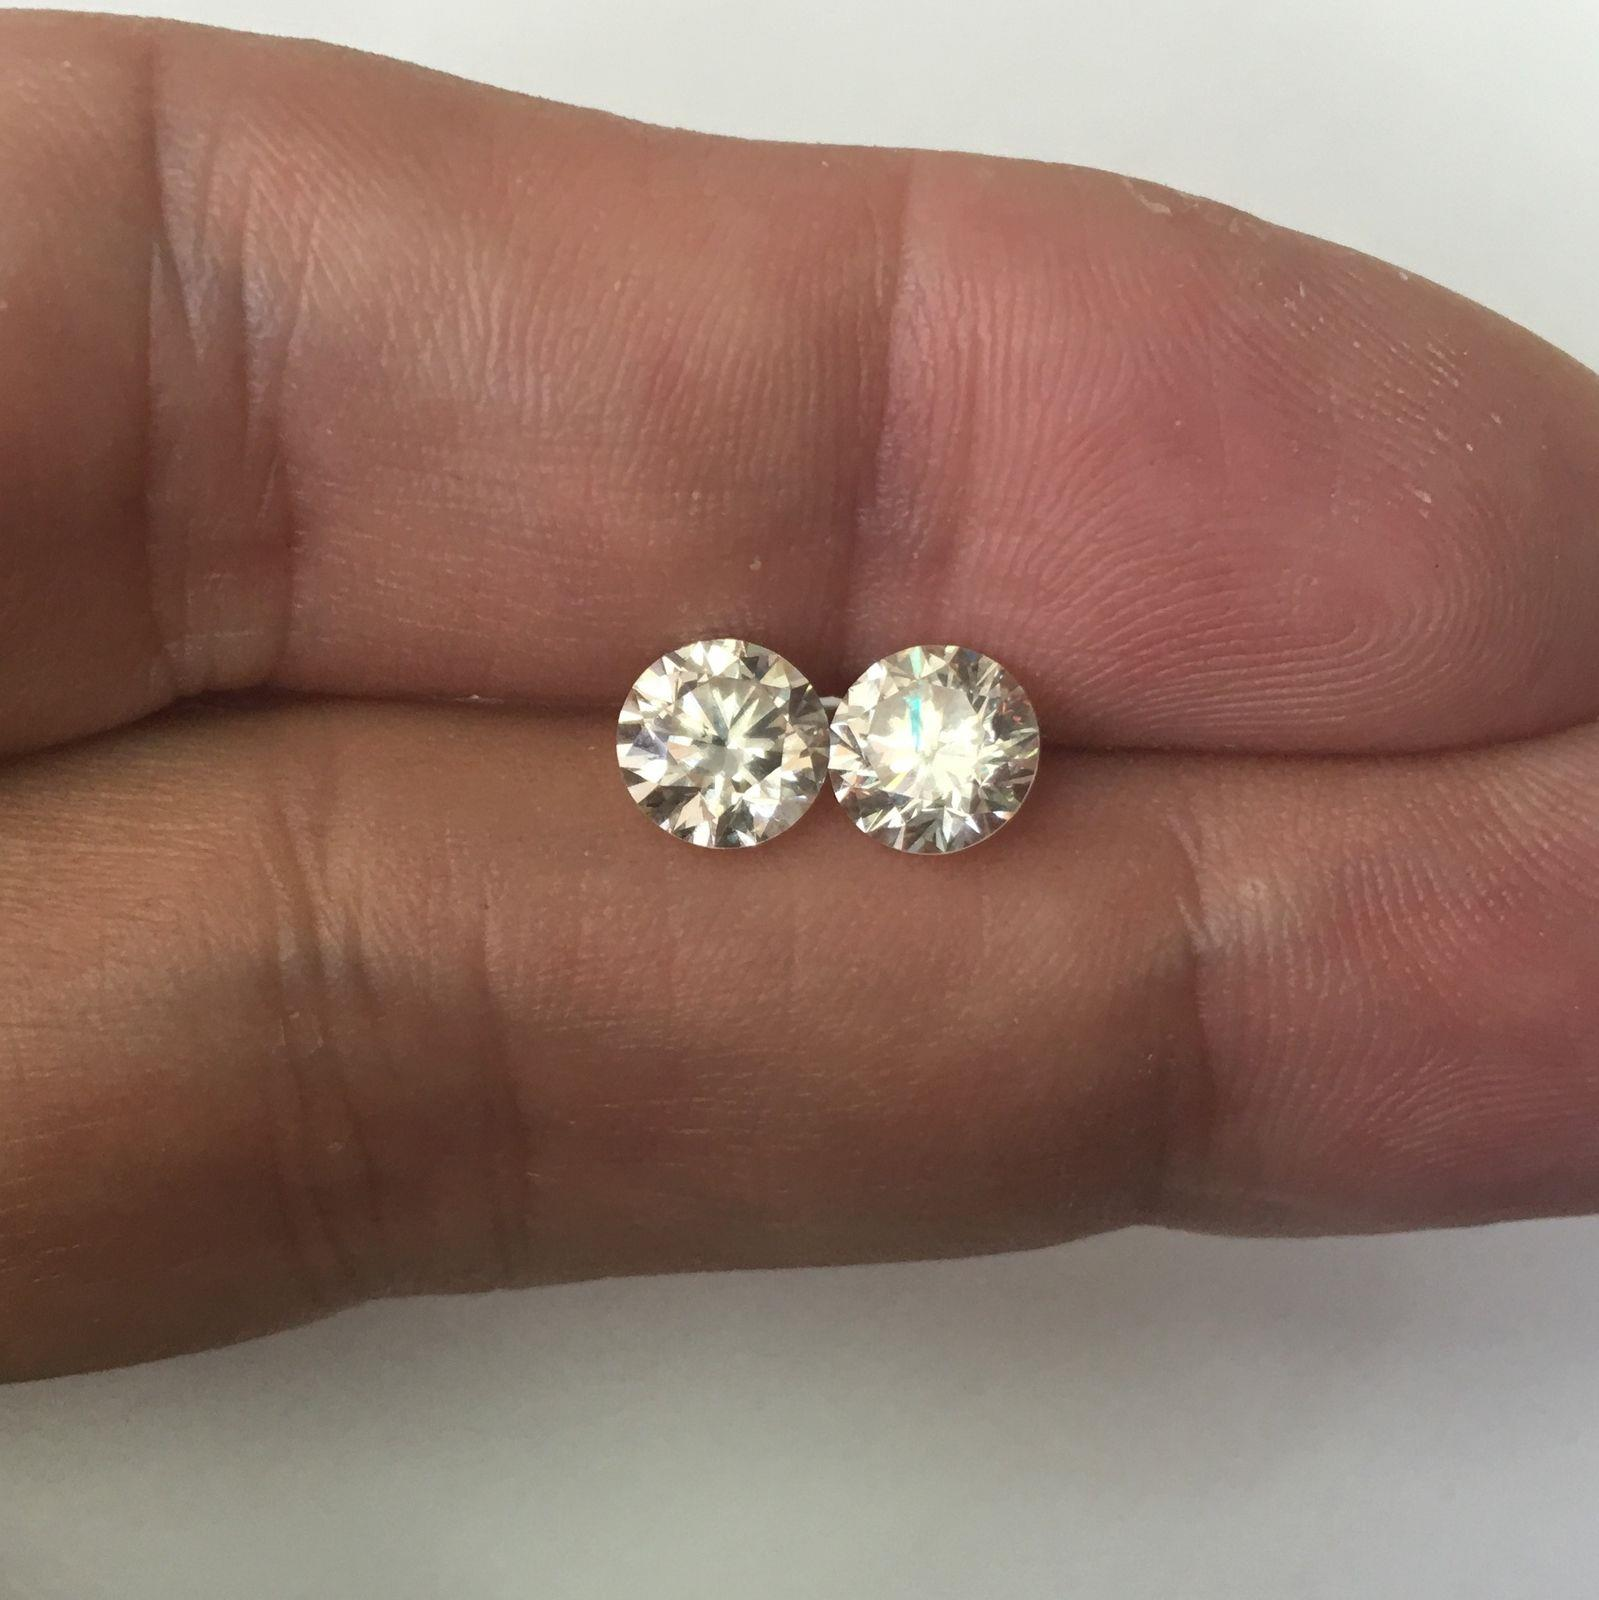 Stud Diamond Earrings D Vs2 3.42 Carat Round Ideal Solitaire 14 K White Gold Fine Jewelry Jewelry & Watches